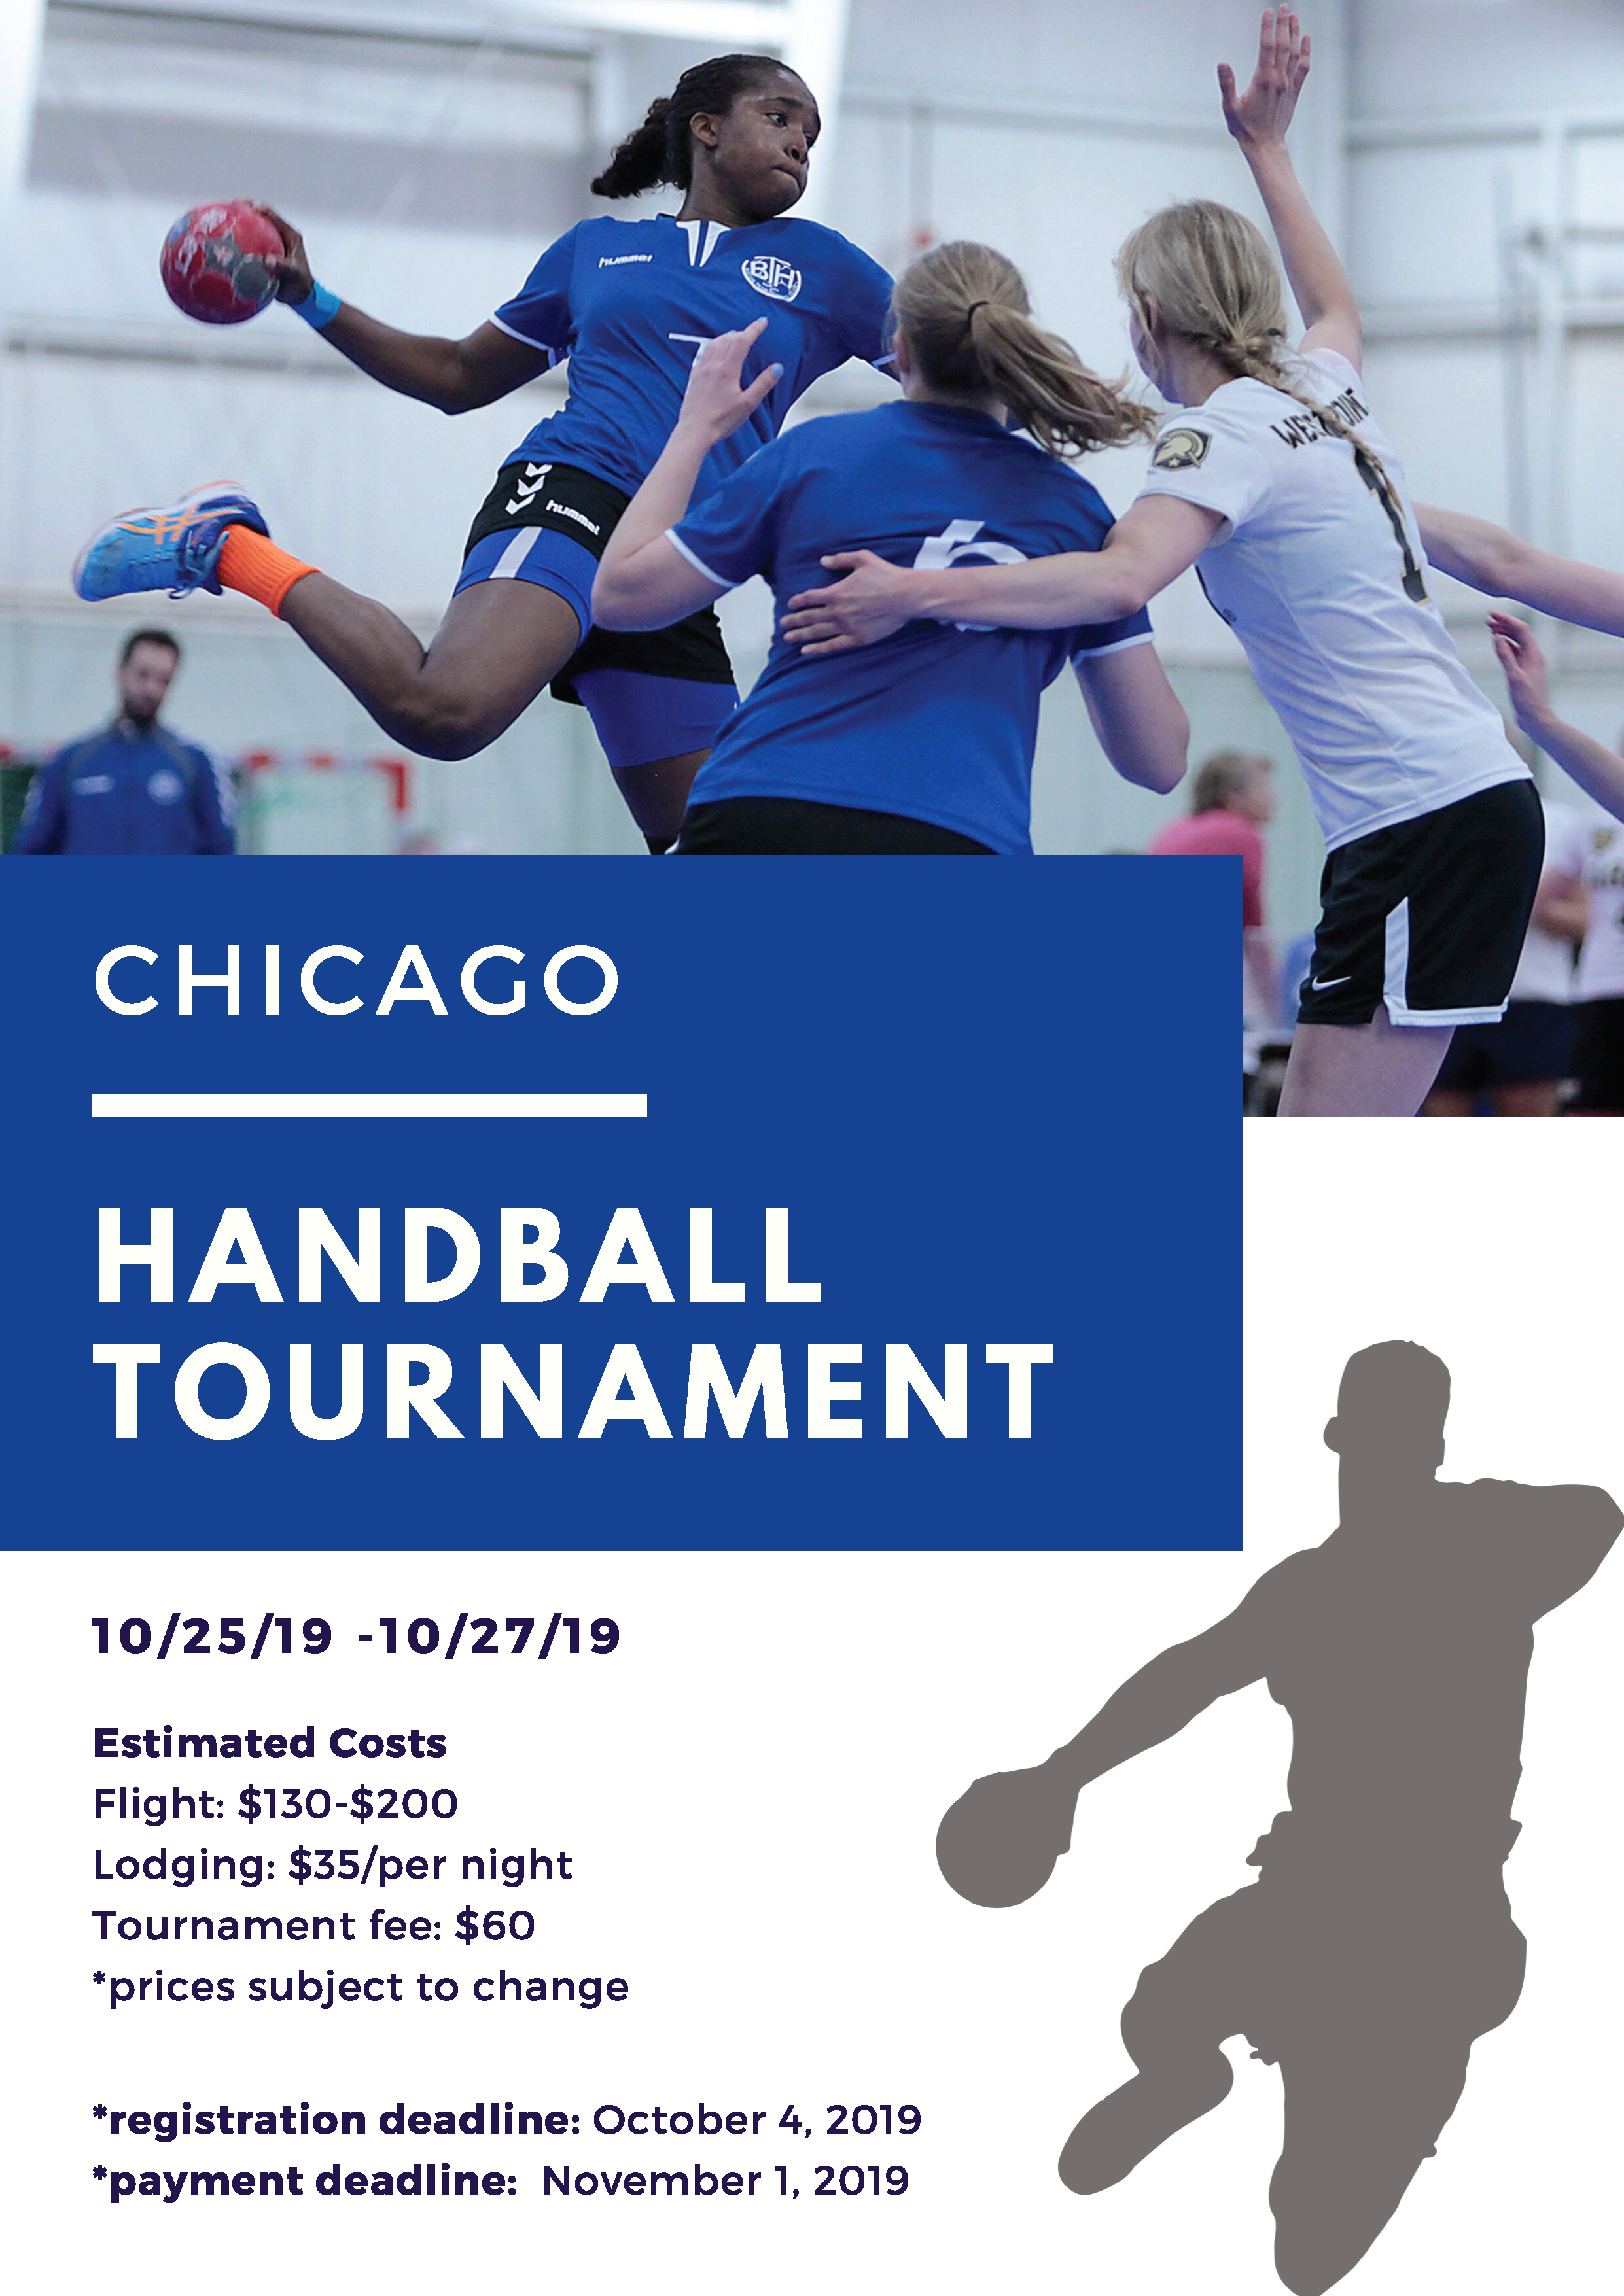 Handball Flyers Templates_Page_1